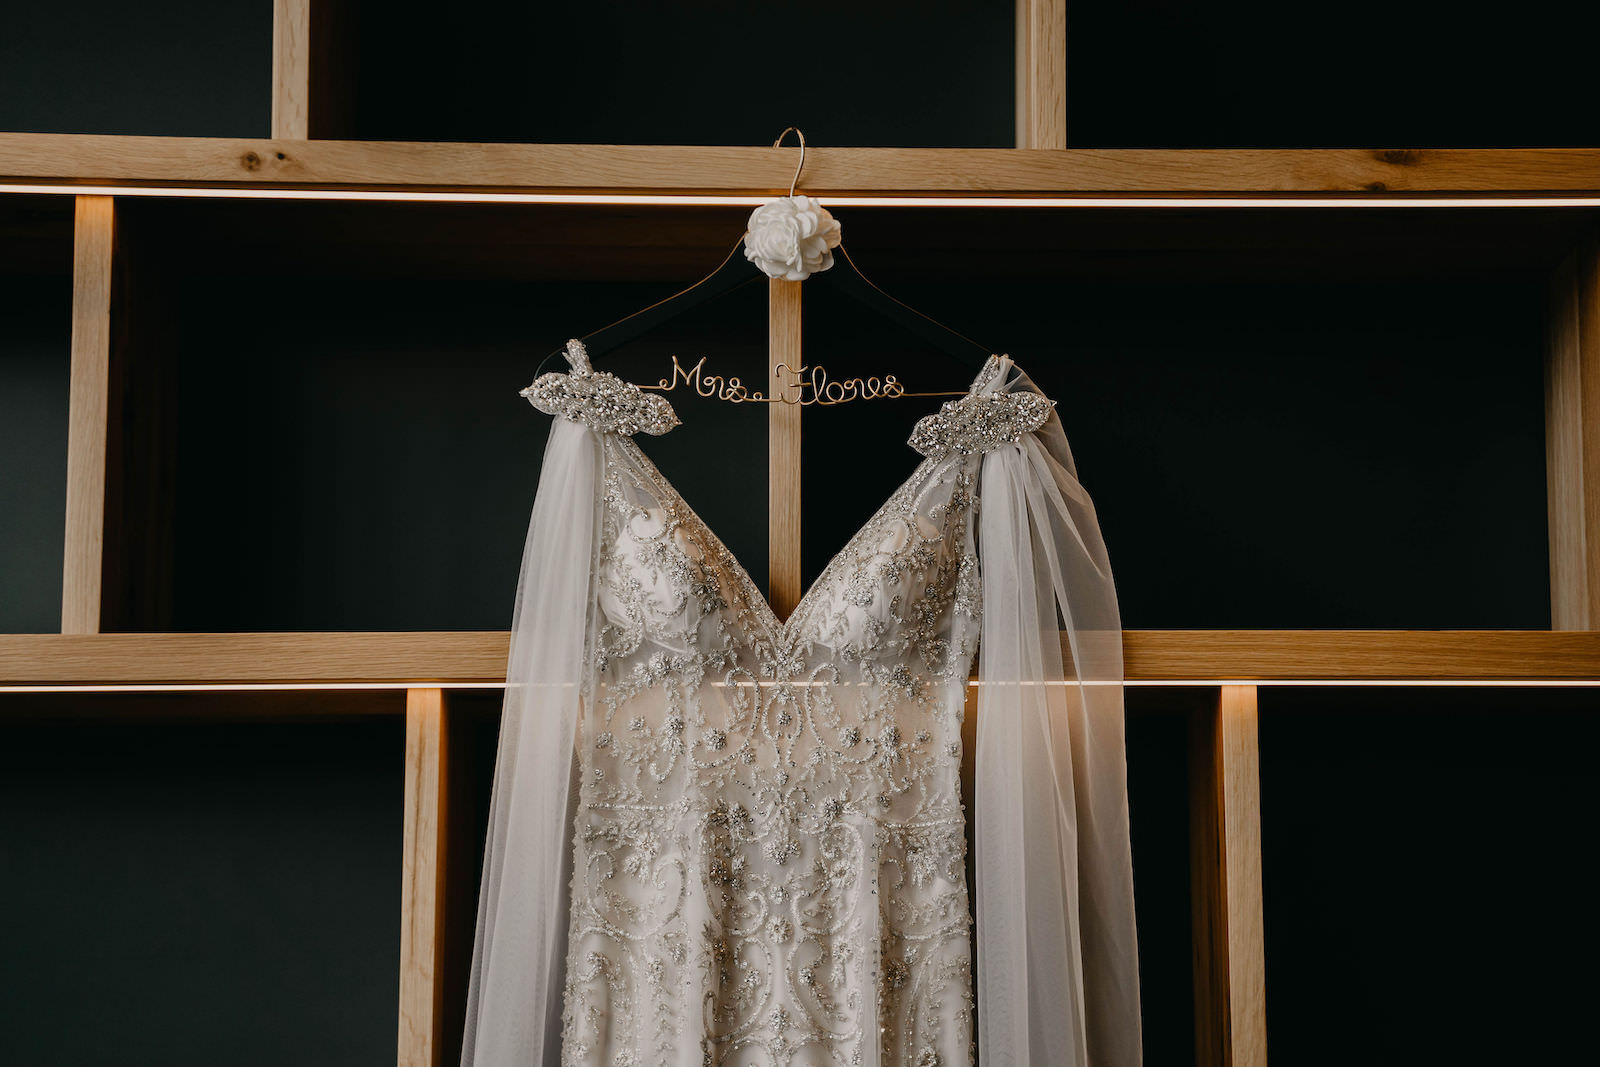 Wedding Dress Hanger Shot   Custom Name Wire Hanger   Illusion Lace Embroidered Beaded V Neck Wedding Dress Bridal Gown with Sheer Tulle Cape Sleeves by Designer Amalia Carrara Bridal